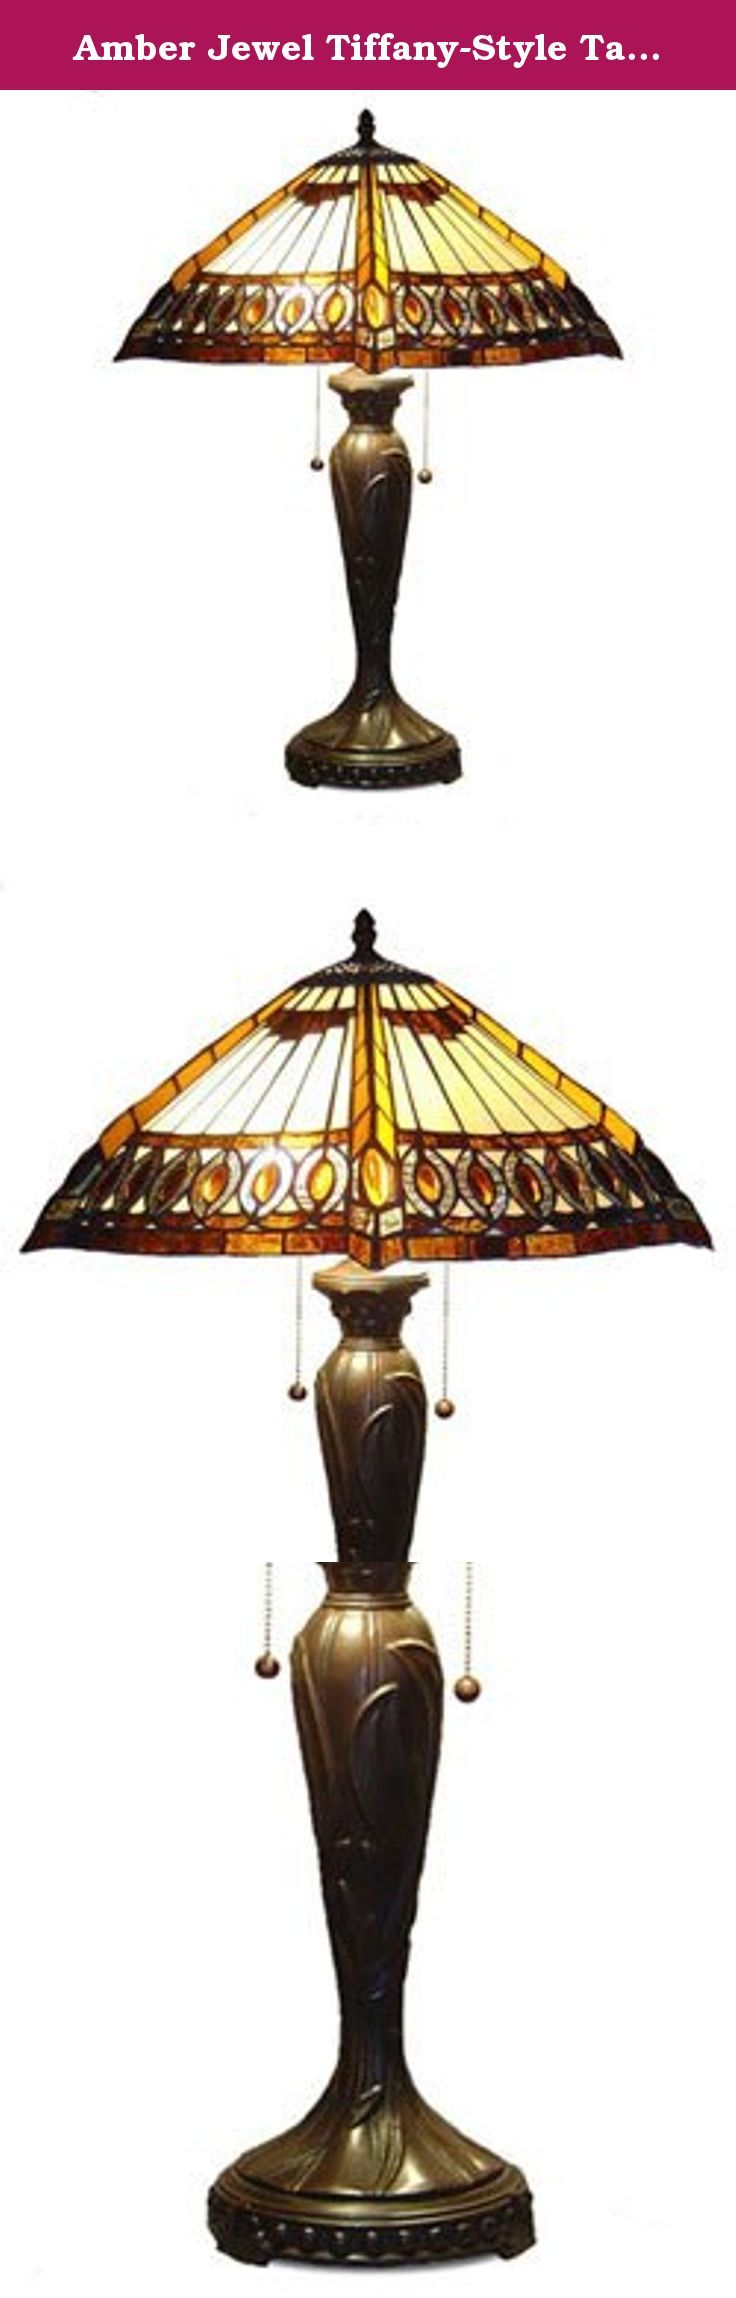 "Amber Jewel Tiffany-Style Table Lamp. Turn-of-the-century American Lighting craftsman design can be found in this Tiffany Style Amberjack Table Lamp. Shade contains hand cut pieces of stained glass, each wrapped in fine copper foil. Cast metal zinc base with an elegant bronzetone finish.The dimensions for this beautiful lamp are W18"" H 25"" with Uses 2 x 60 watt bulbs and 2 pull chain switches."